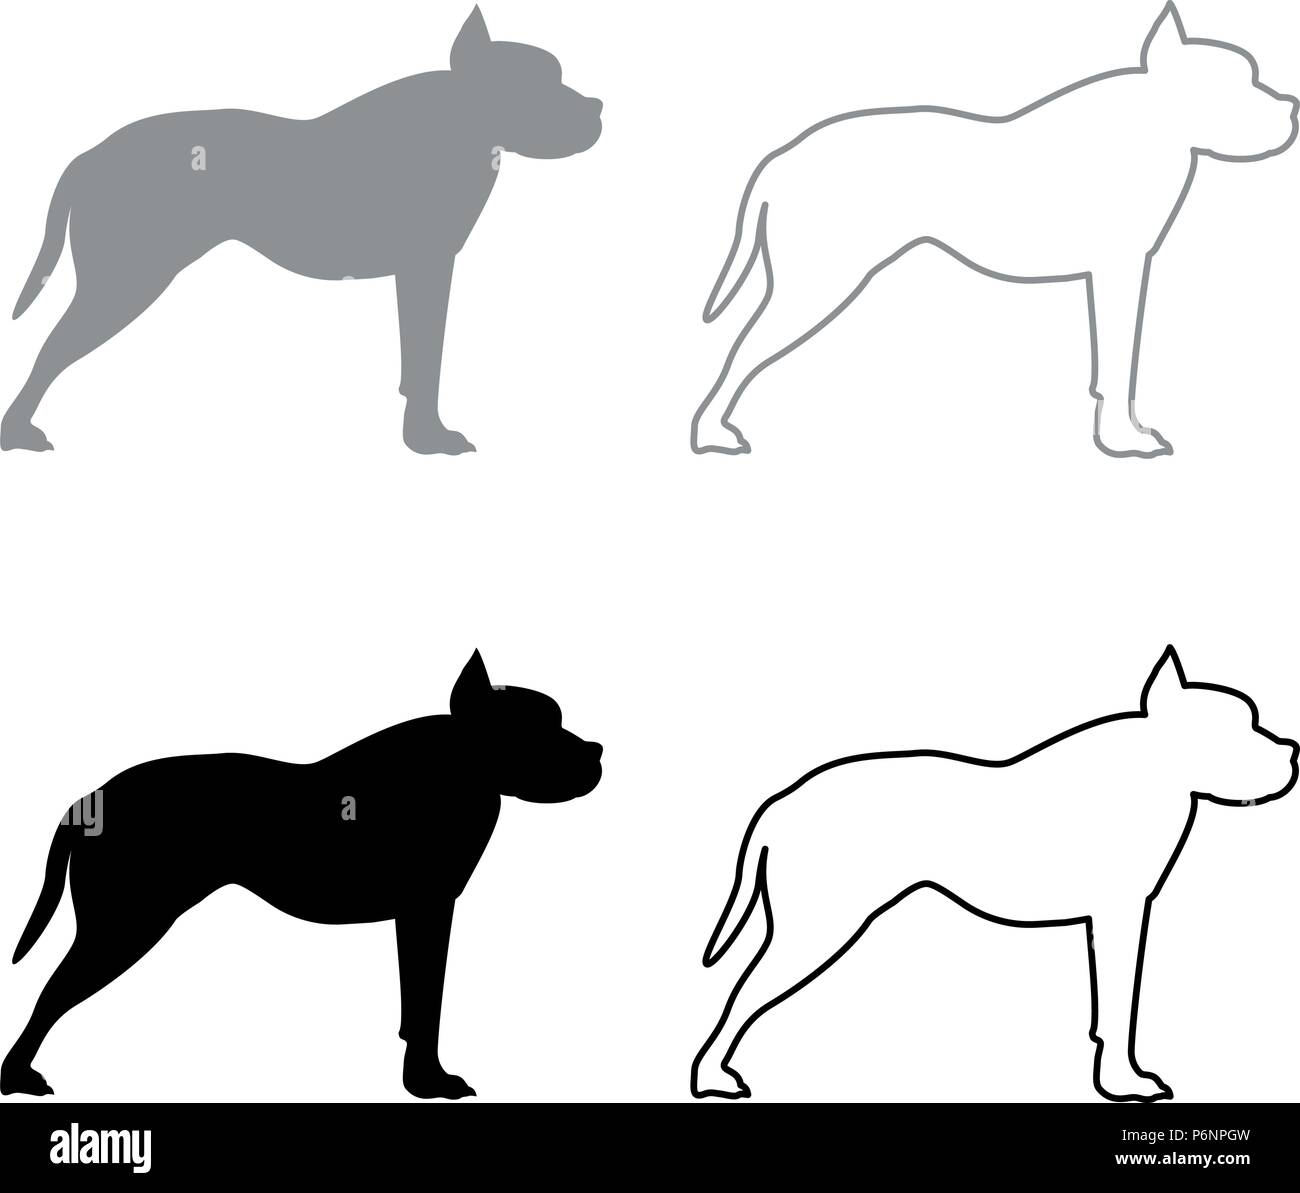 Pit bull terrier icon set grey black color I flat style simple image Stock Vector